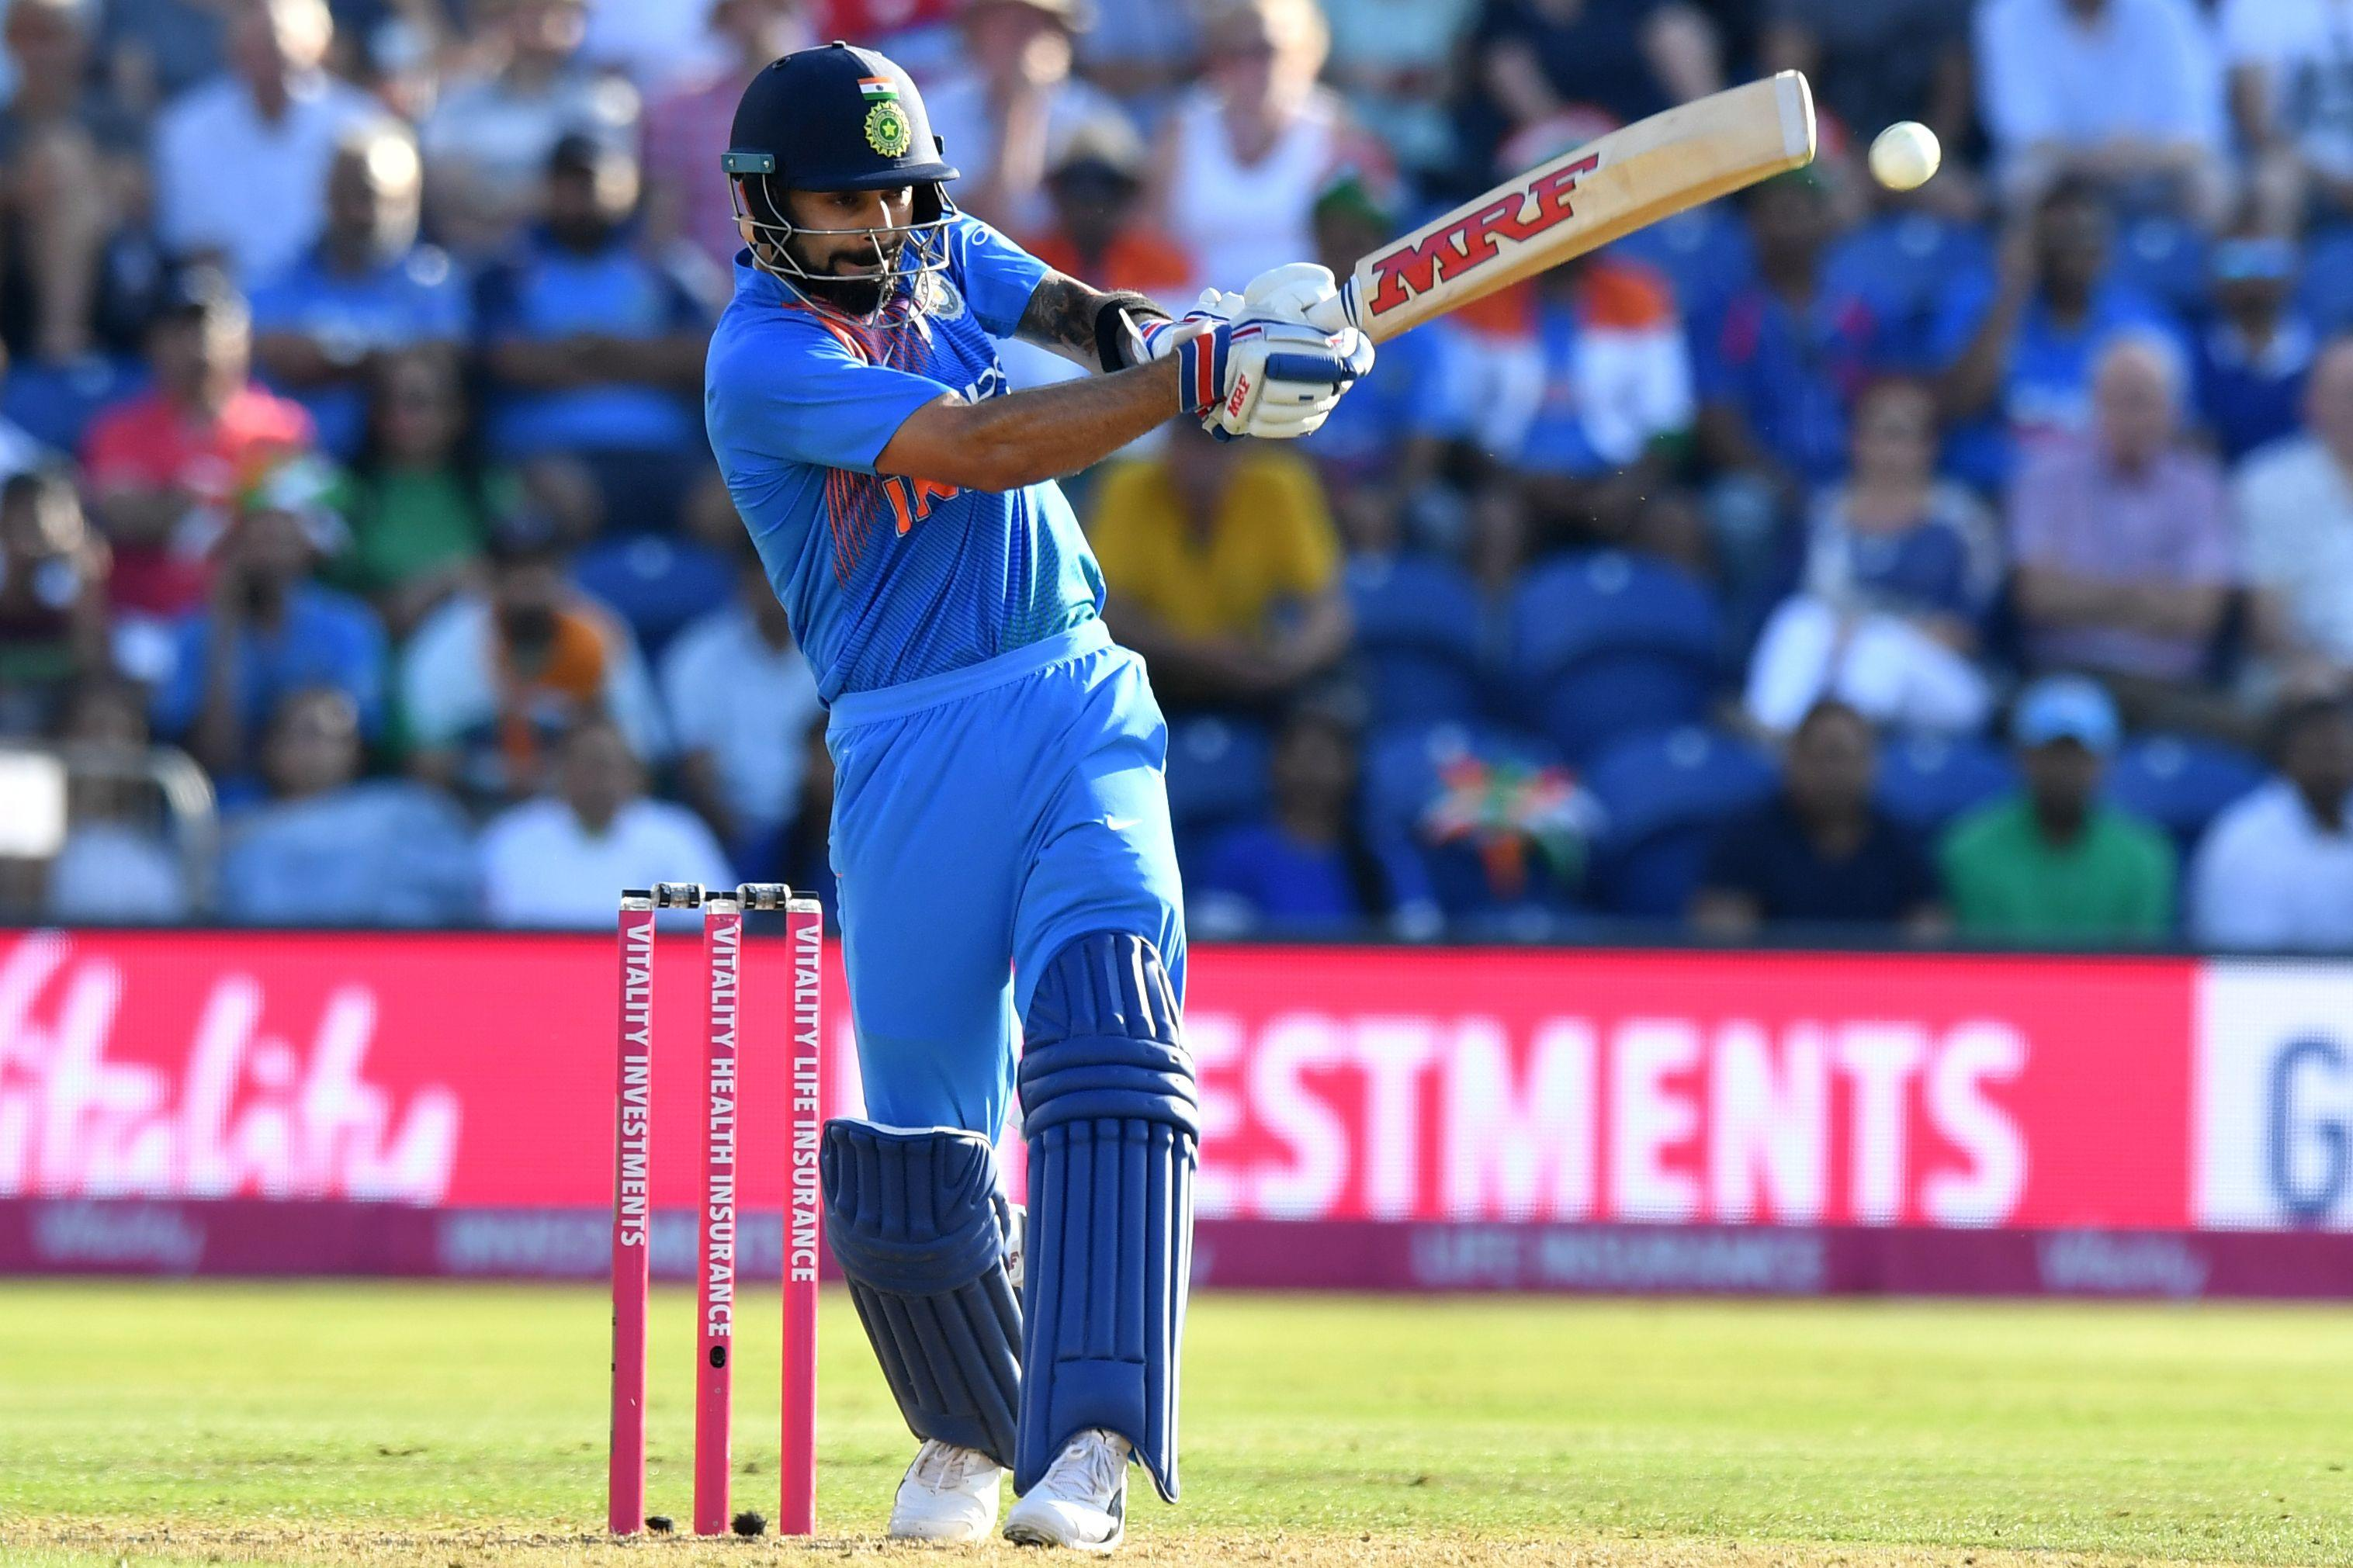 Virat Kohli top scored in India's innings with 47 from 38 balls